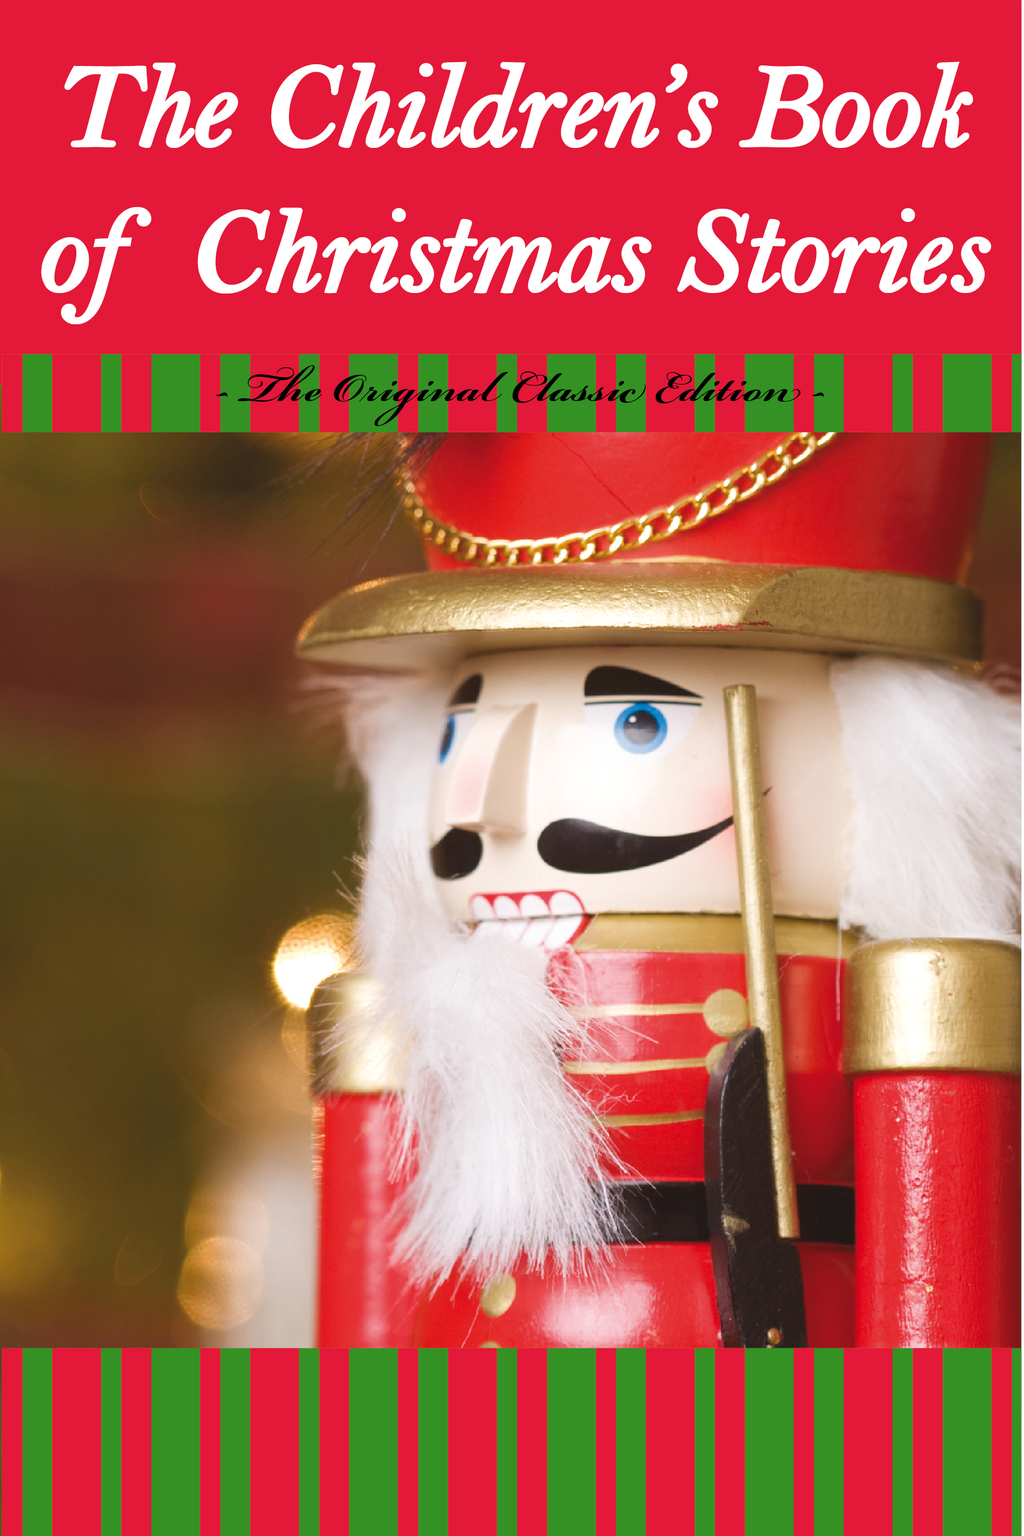 The Children's Book Of Christmas Stories - The Original Classic Edition